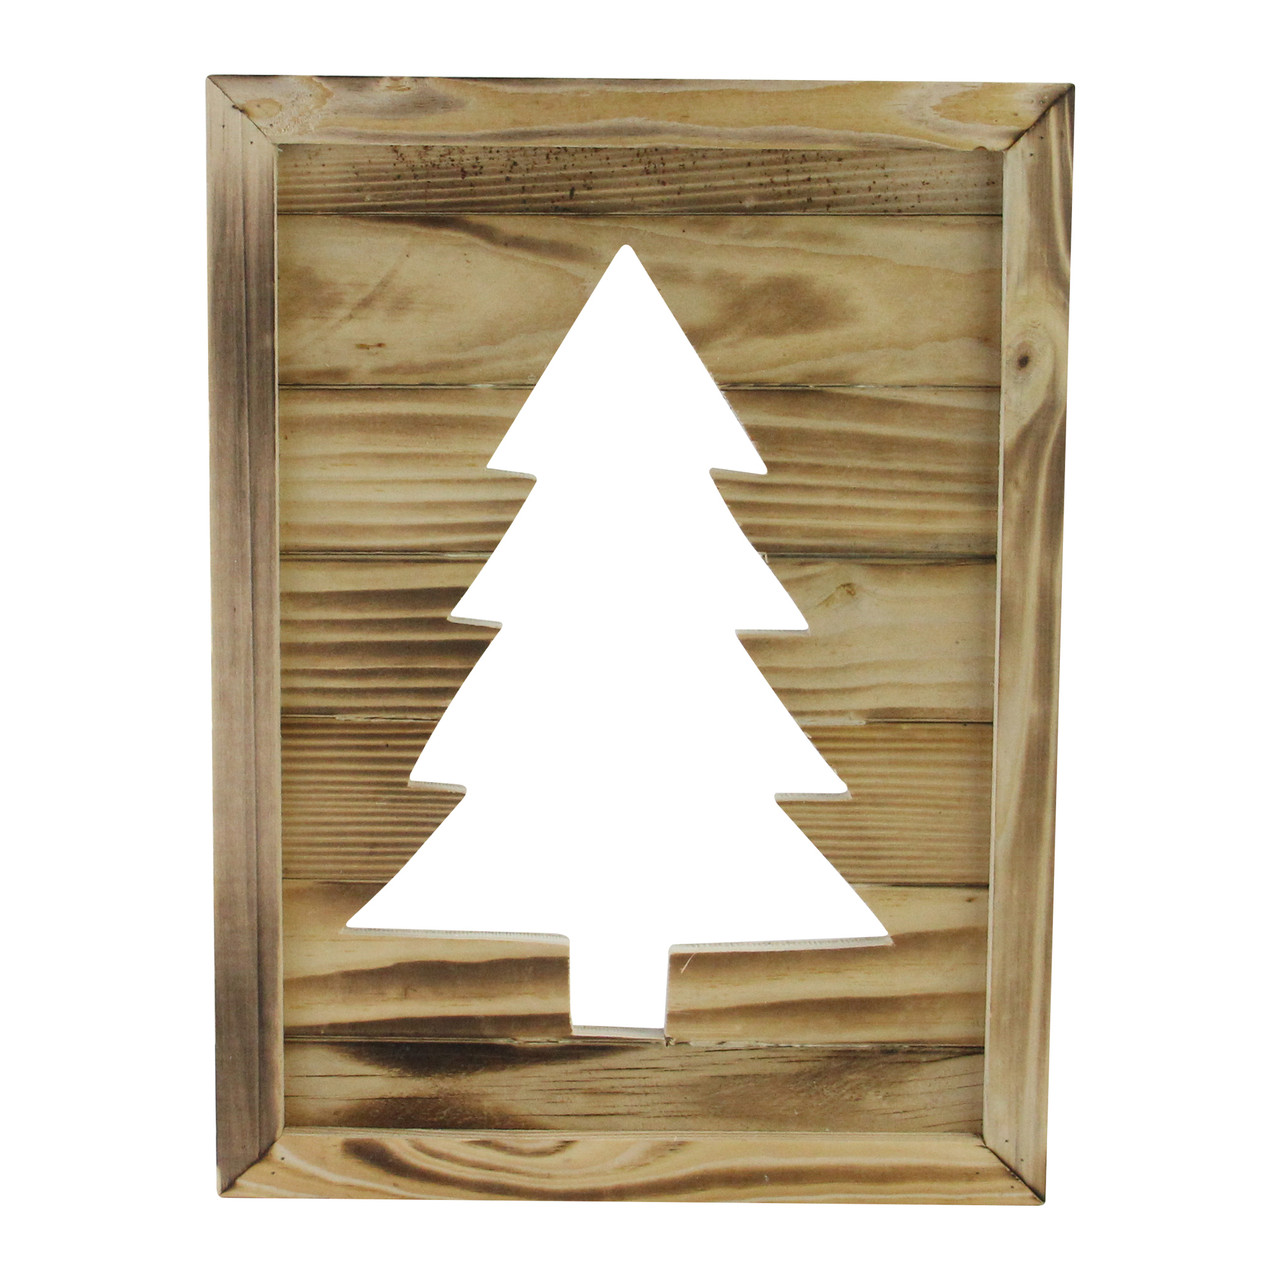 13 75 Framed Wood Christmas Tree Out Wall Hanging Decoration Christmas Central